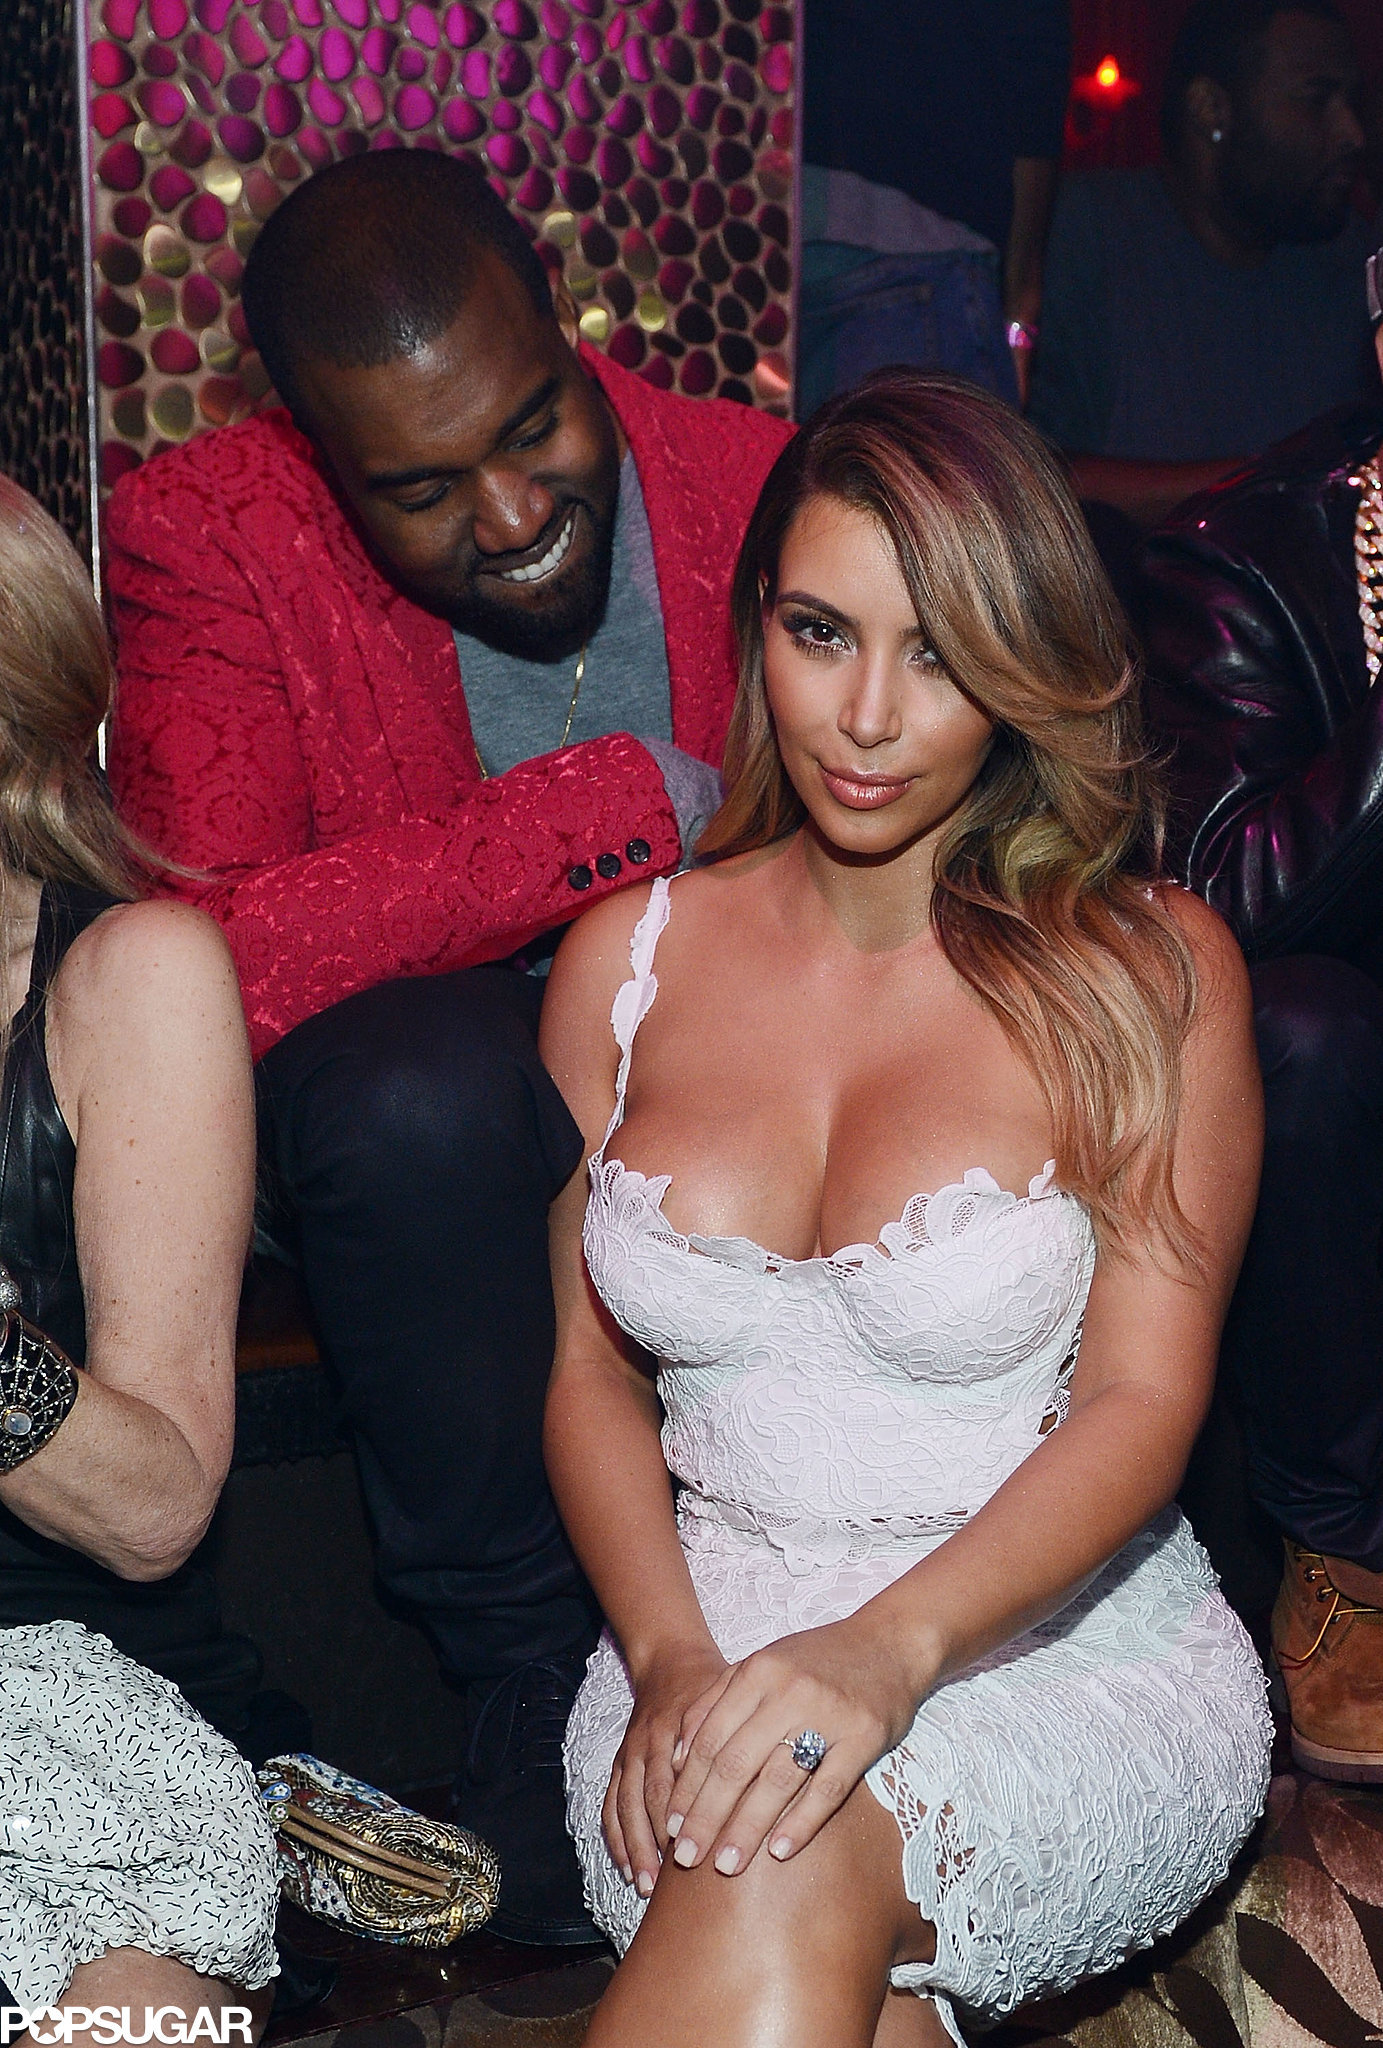 Kanye couldn't keep his eye off Kim during an October 2013 trip to Las Vegas to celebrate her birthday.